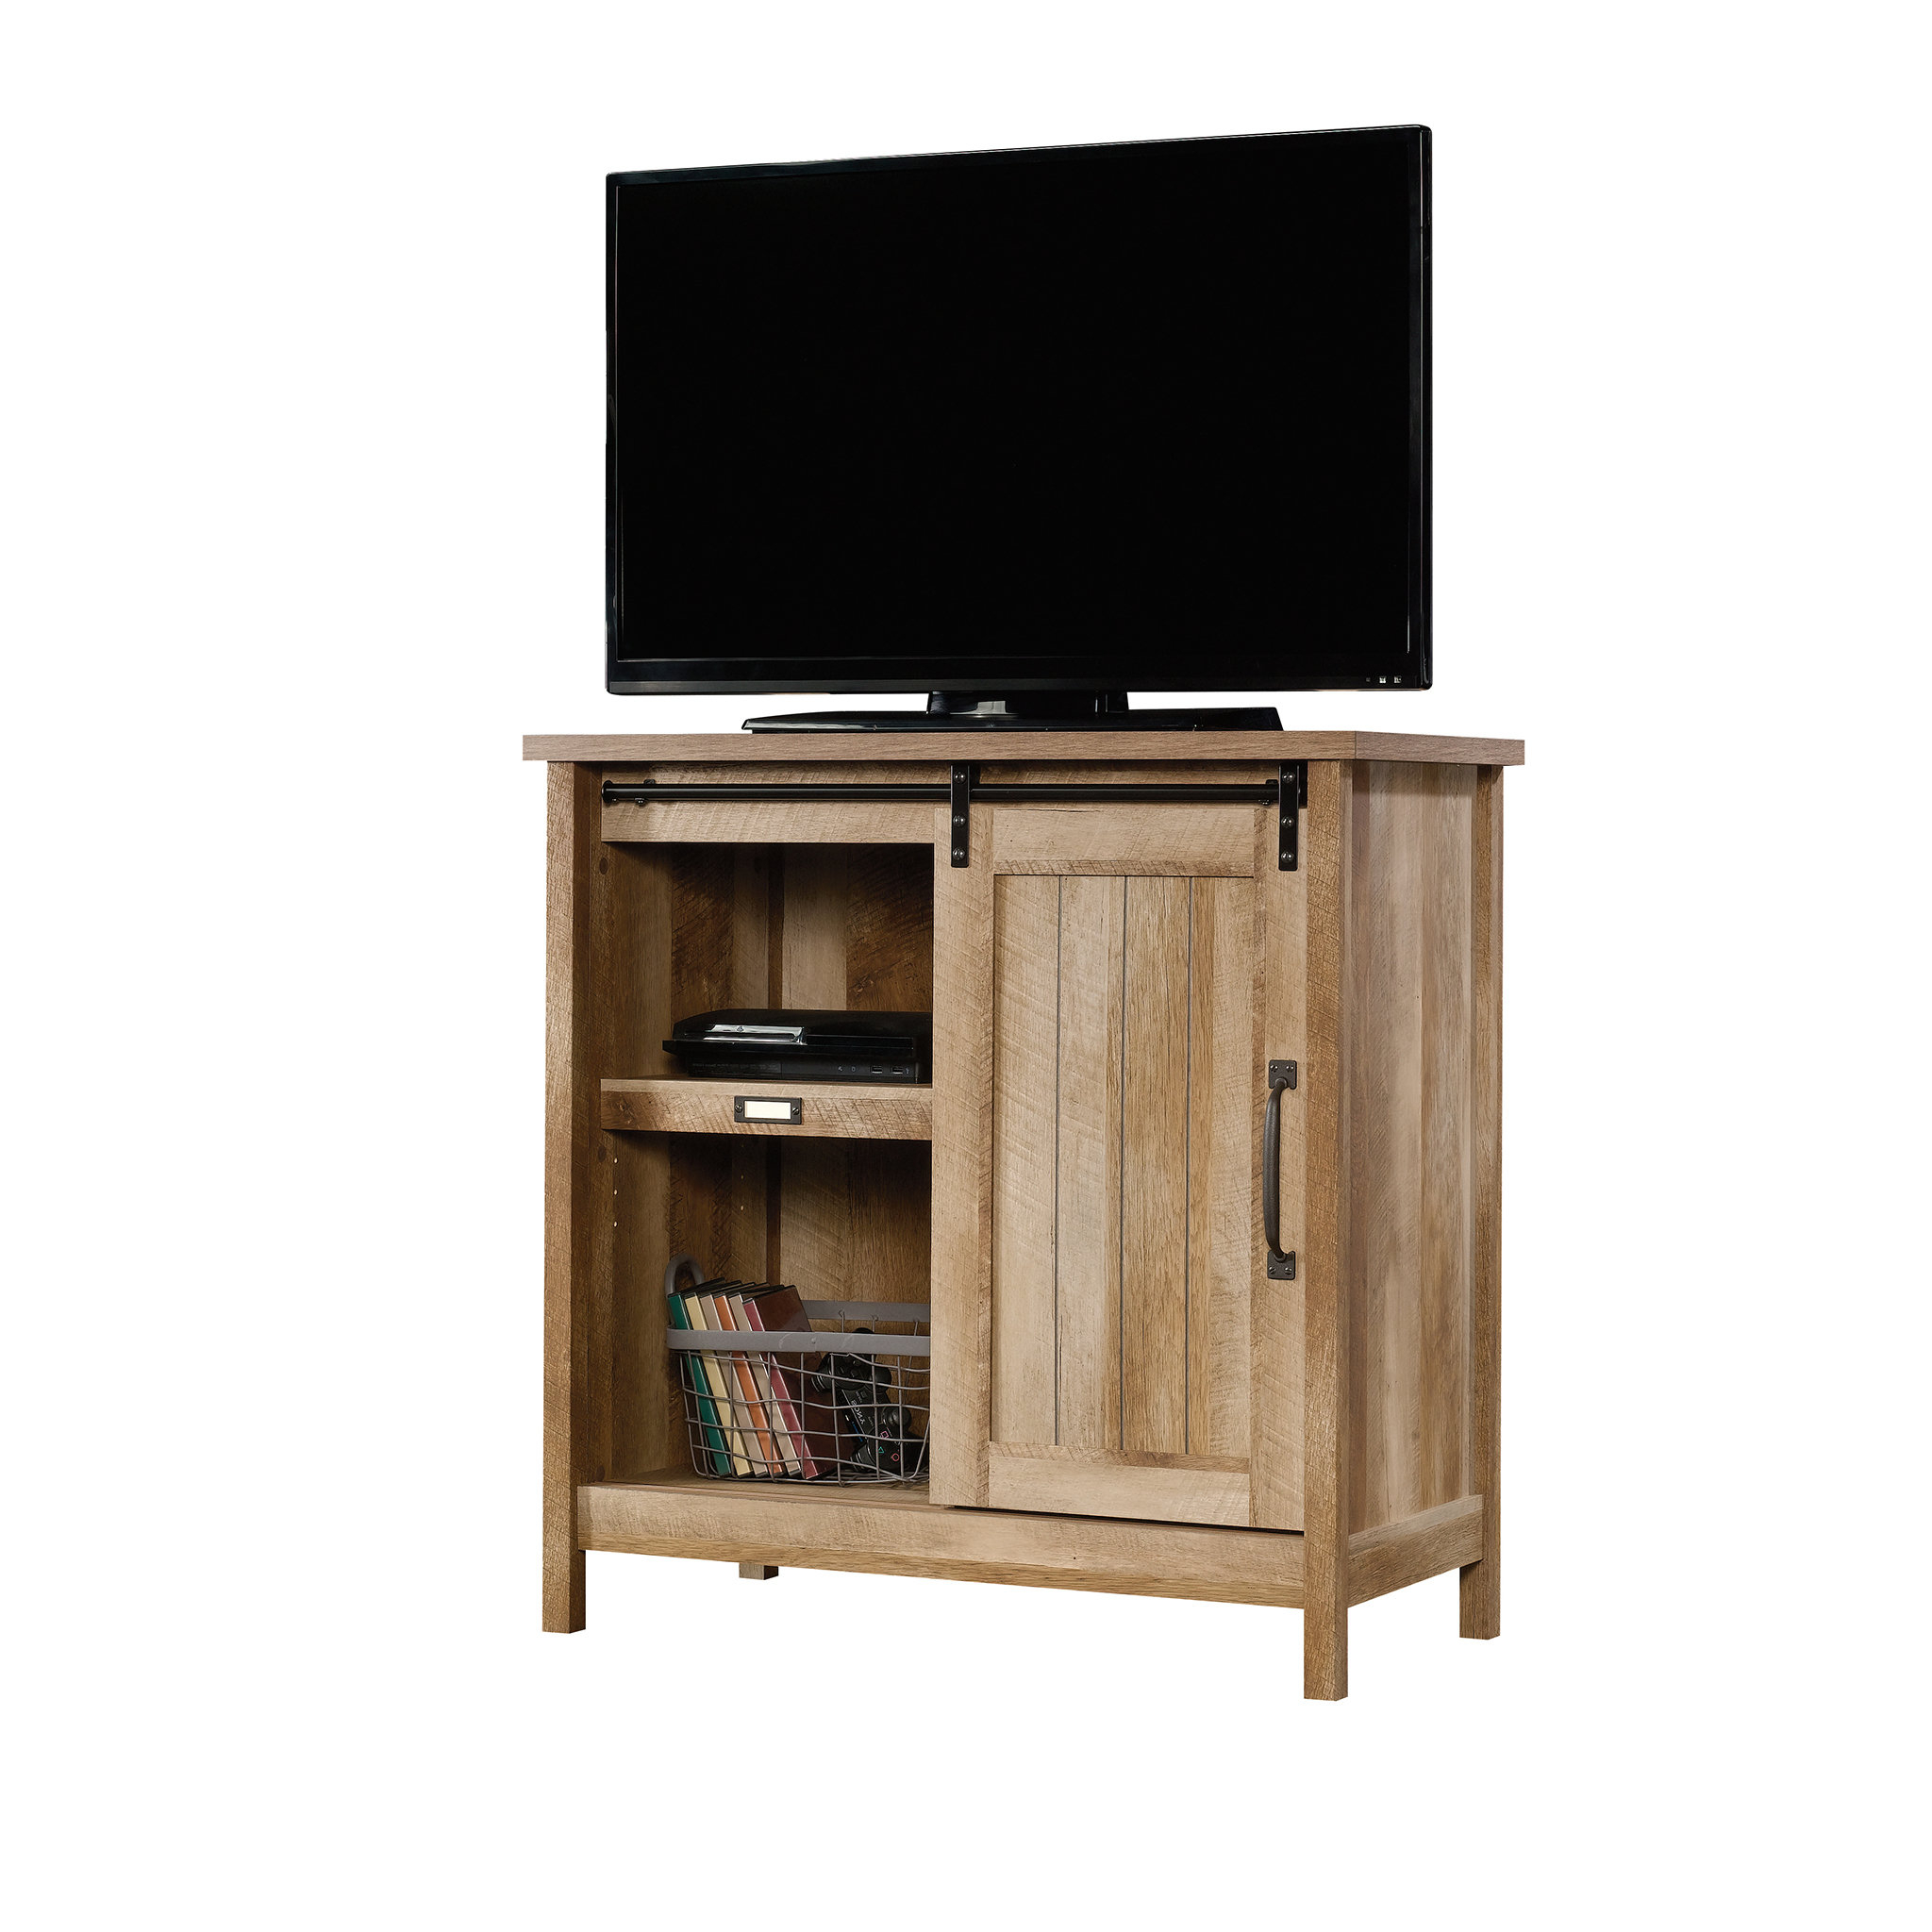 Tall Tv Stands You'll Love | Wayfair Inside Edwin Black 64 Inch Tv Stands (View 12 of 20)